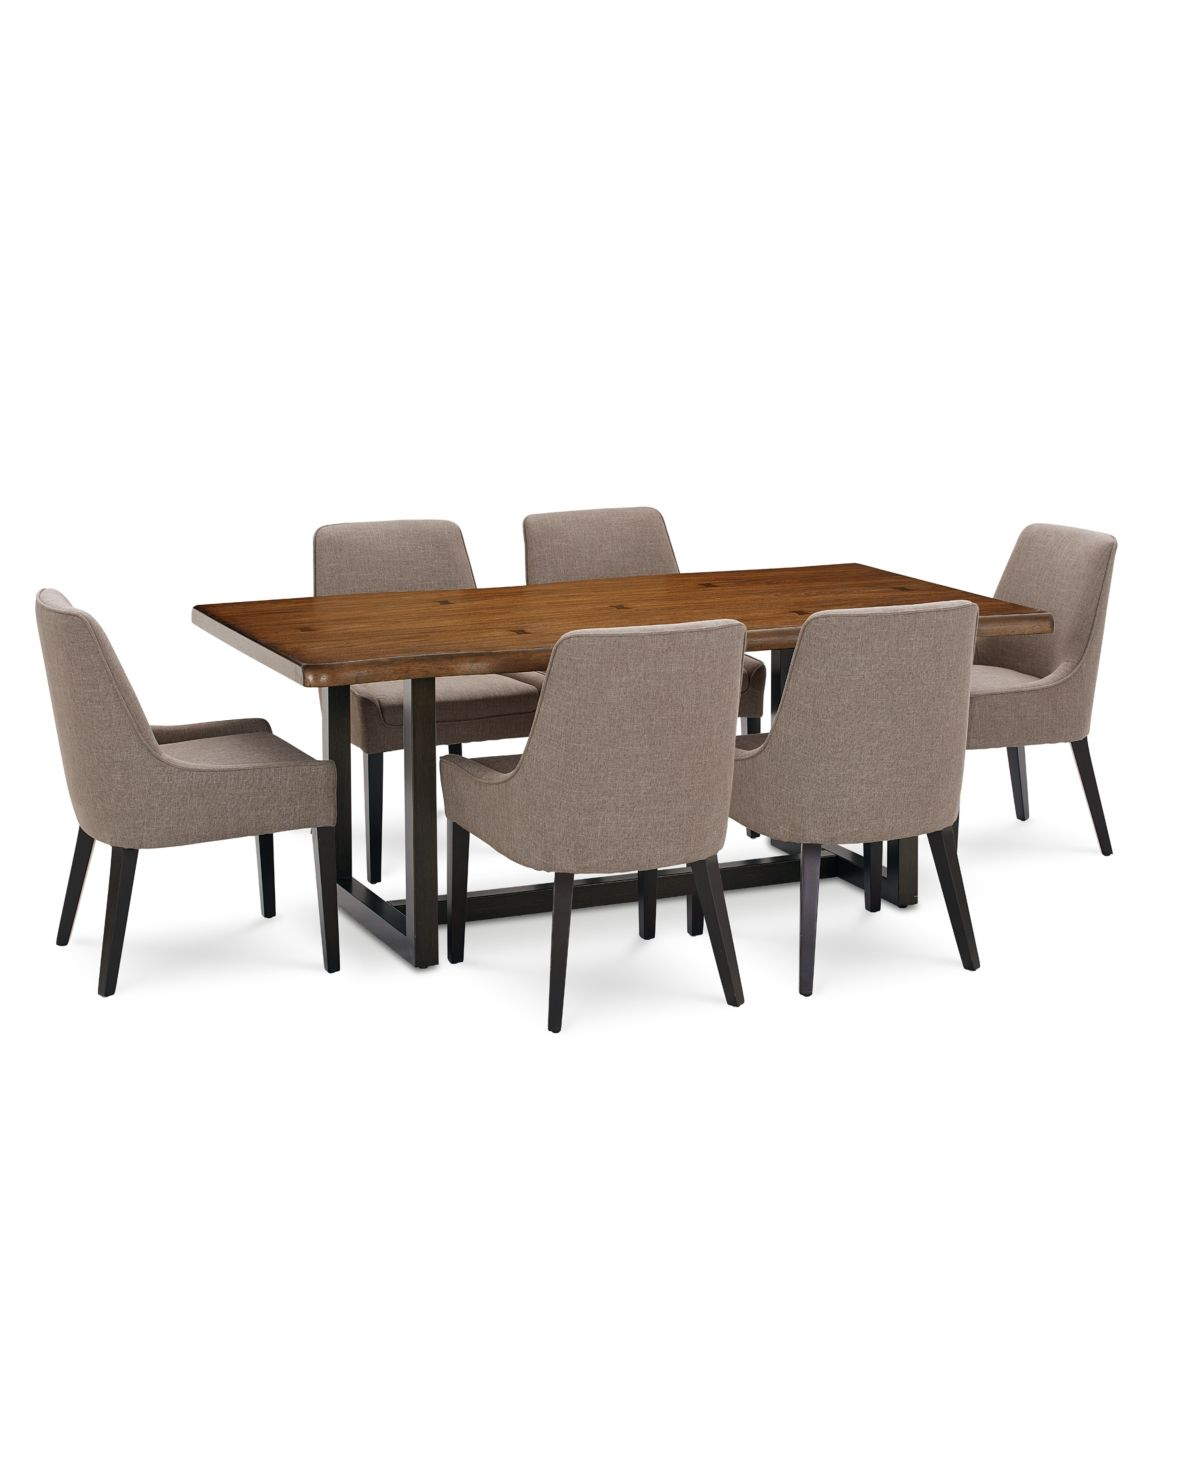 Furniture Everly Dining Furniture 7 Pc Set Table 6 Square